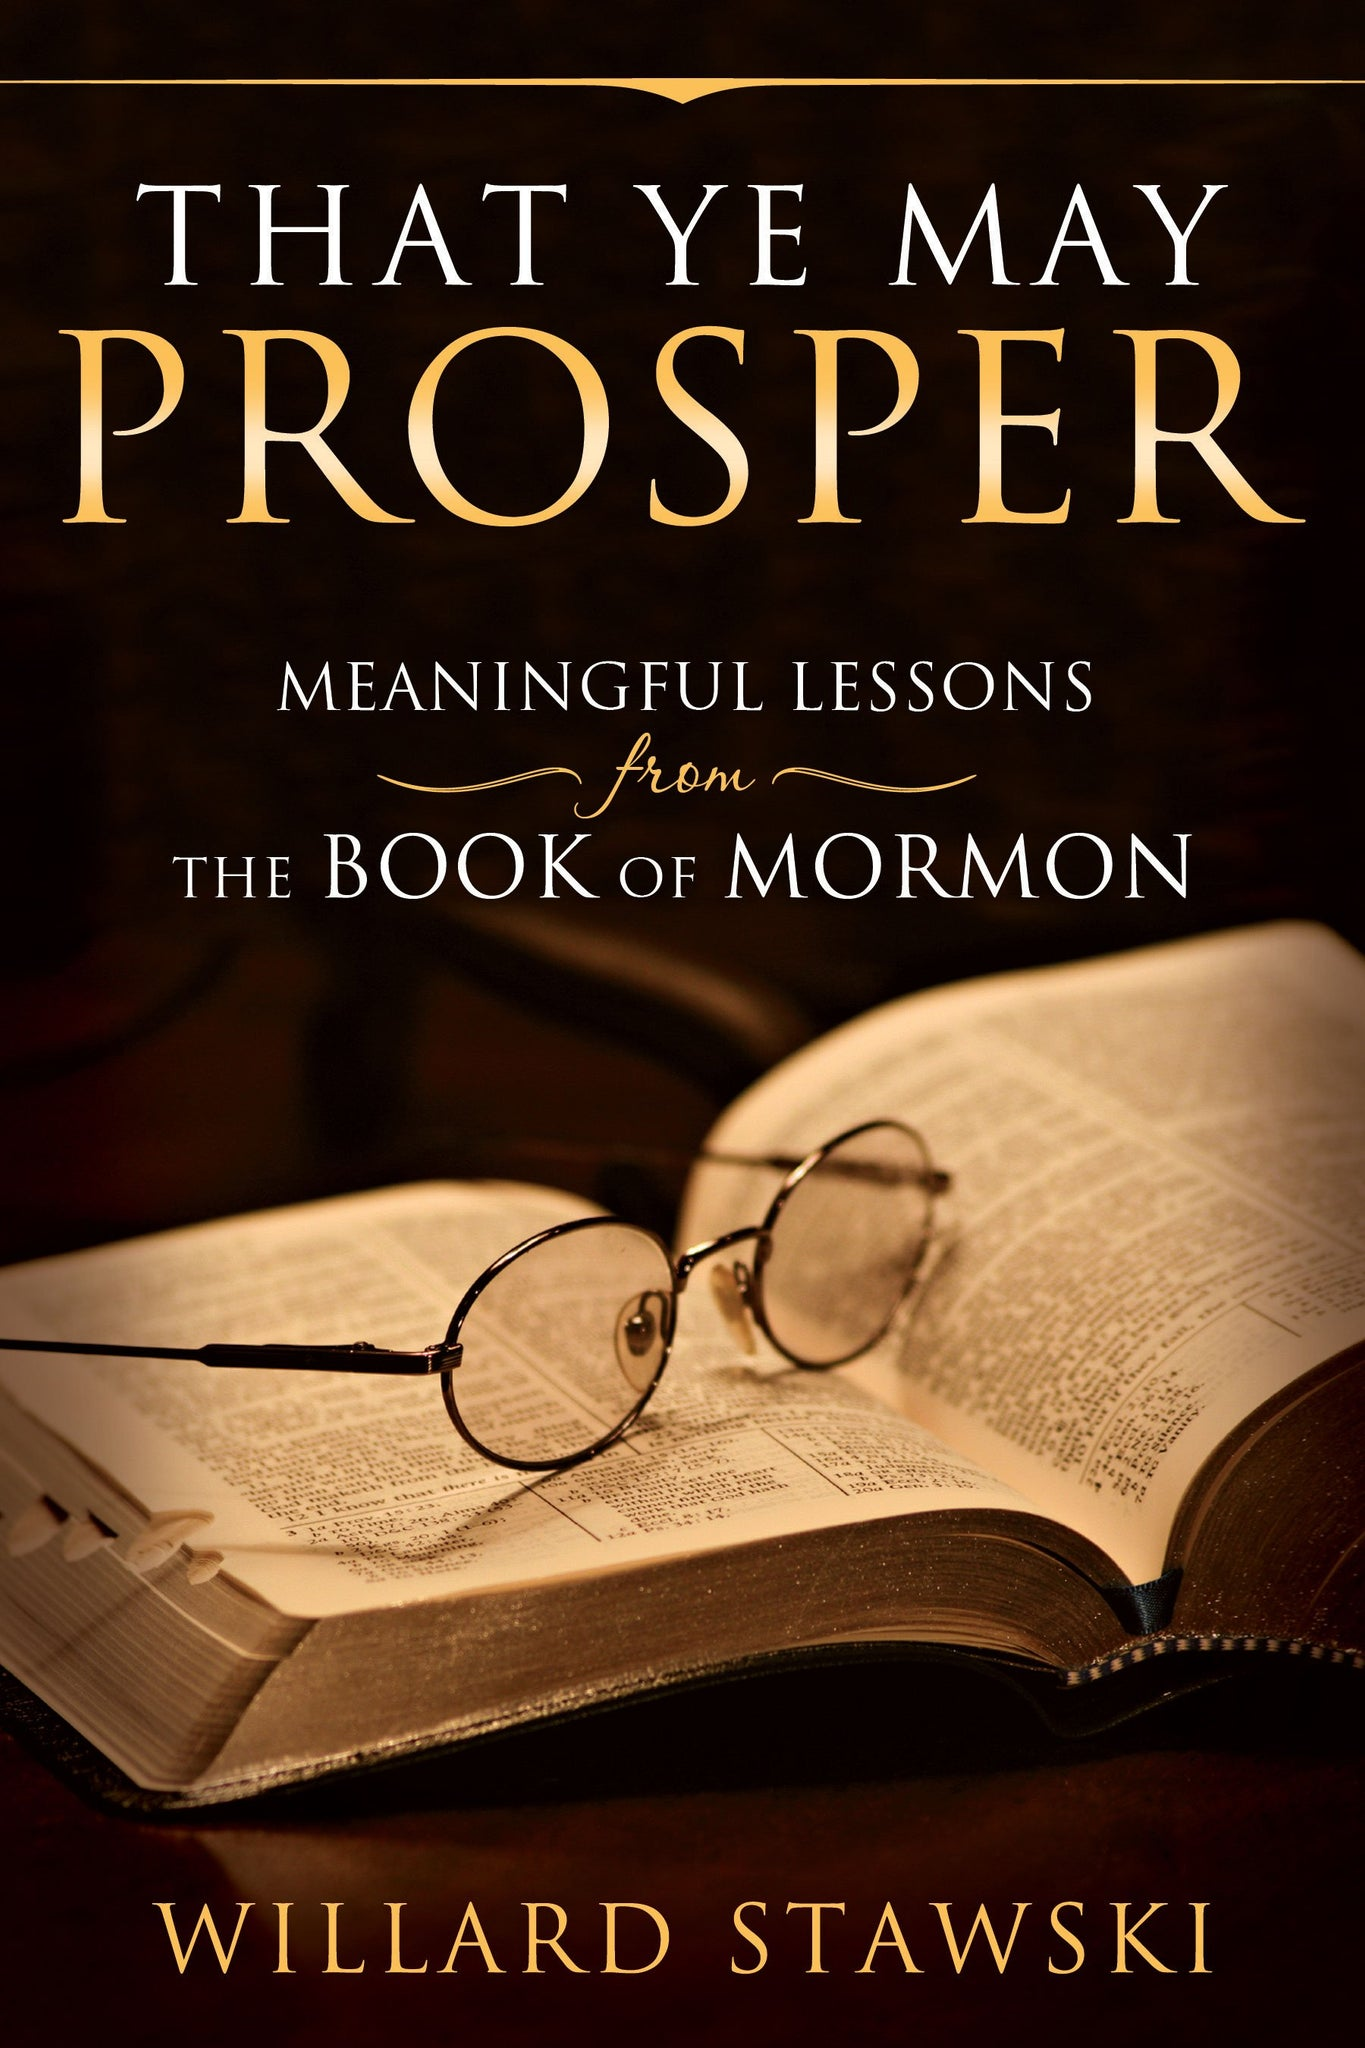 That Ye May Prosper: Meaningful Lessons from the Book of Mormon - Paperback